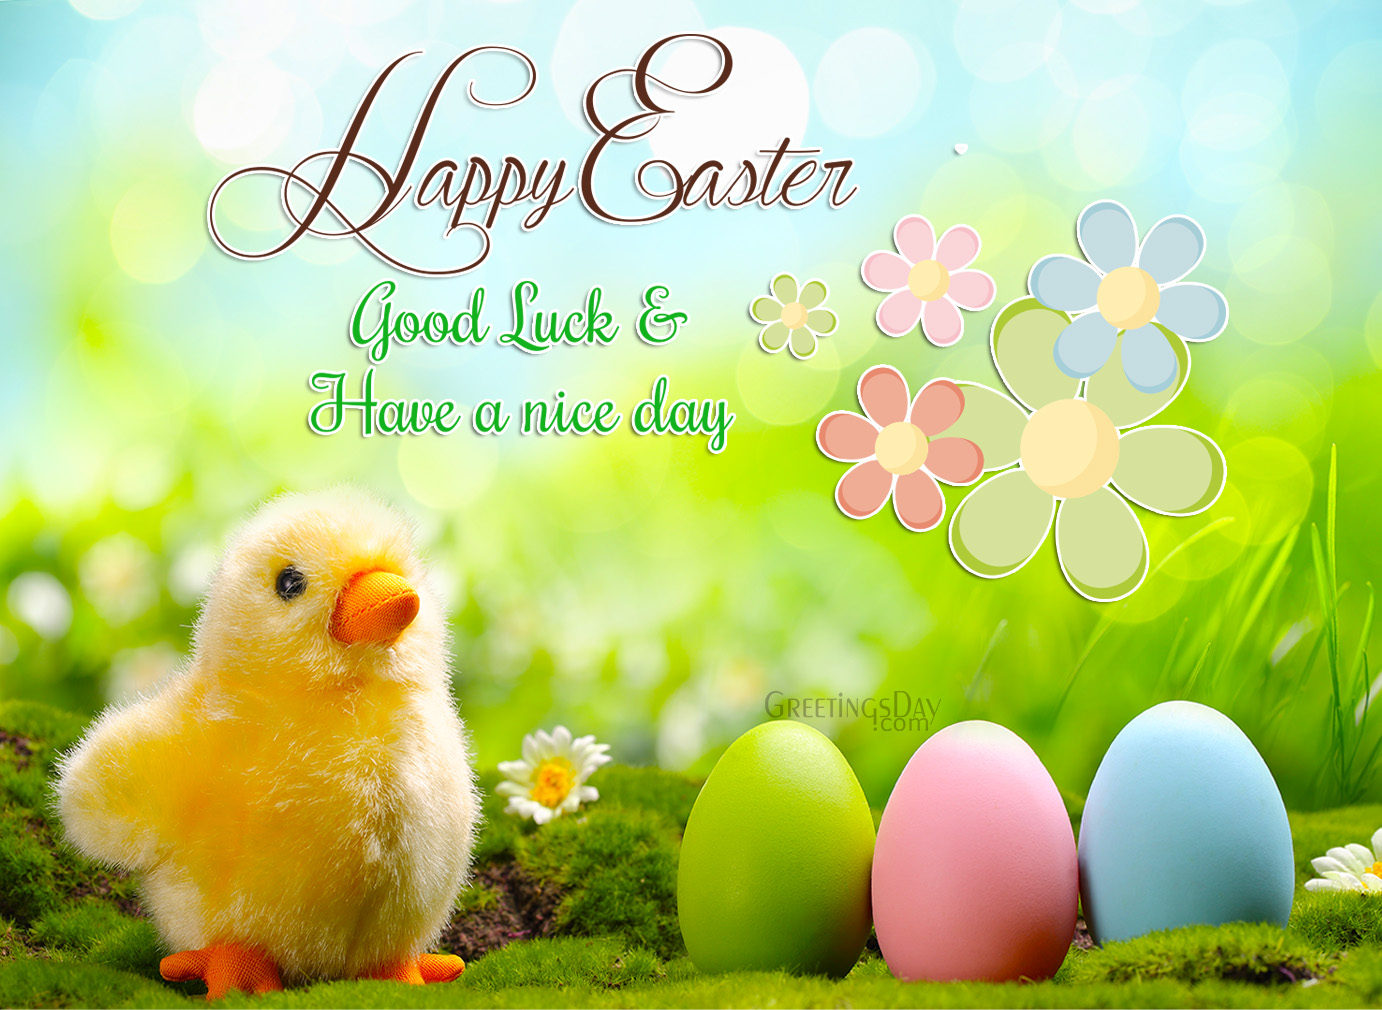 Happy easter to all of you